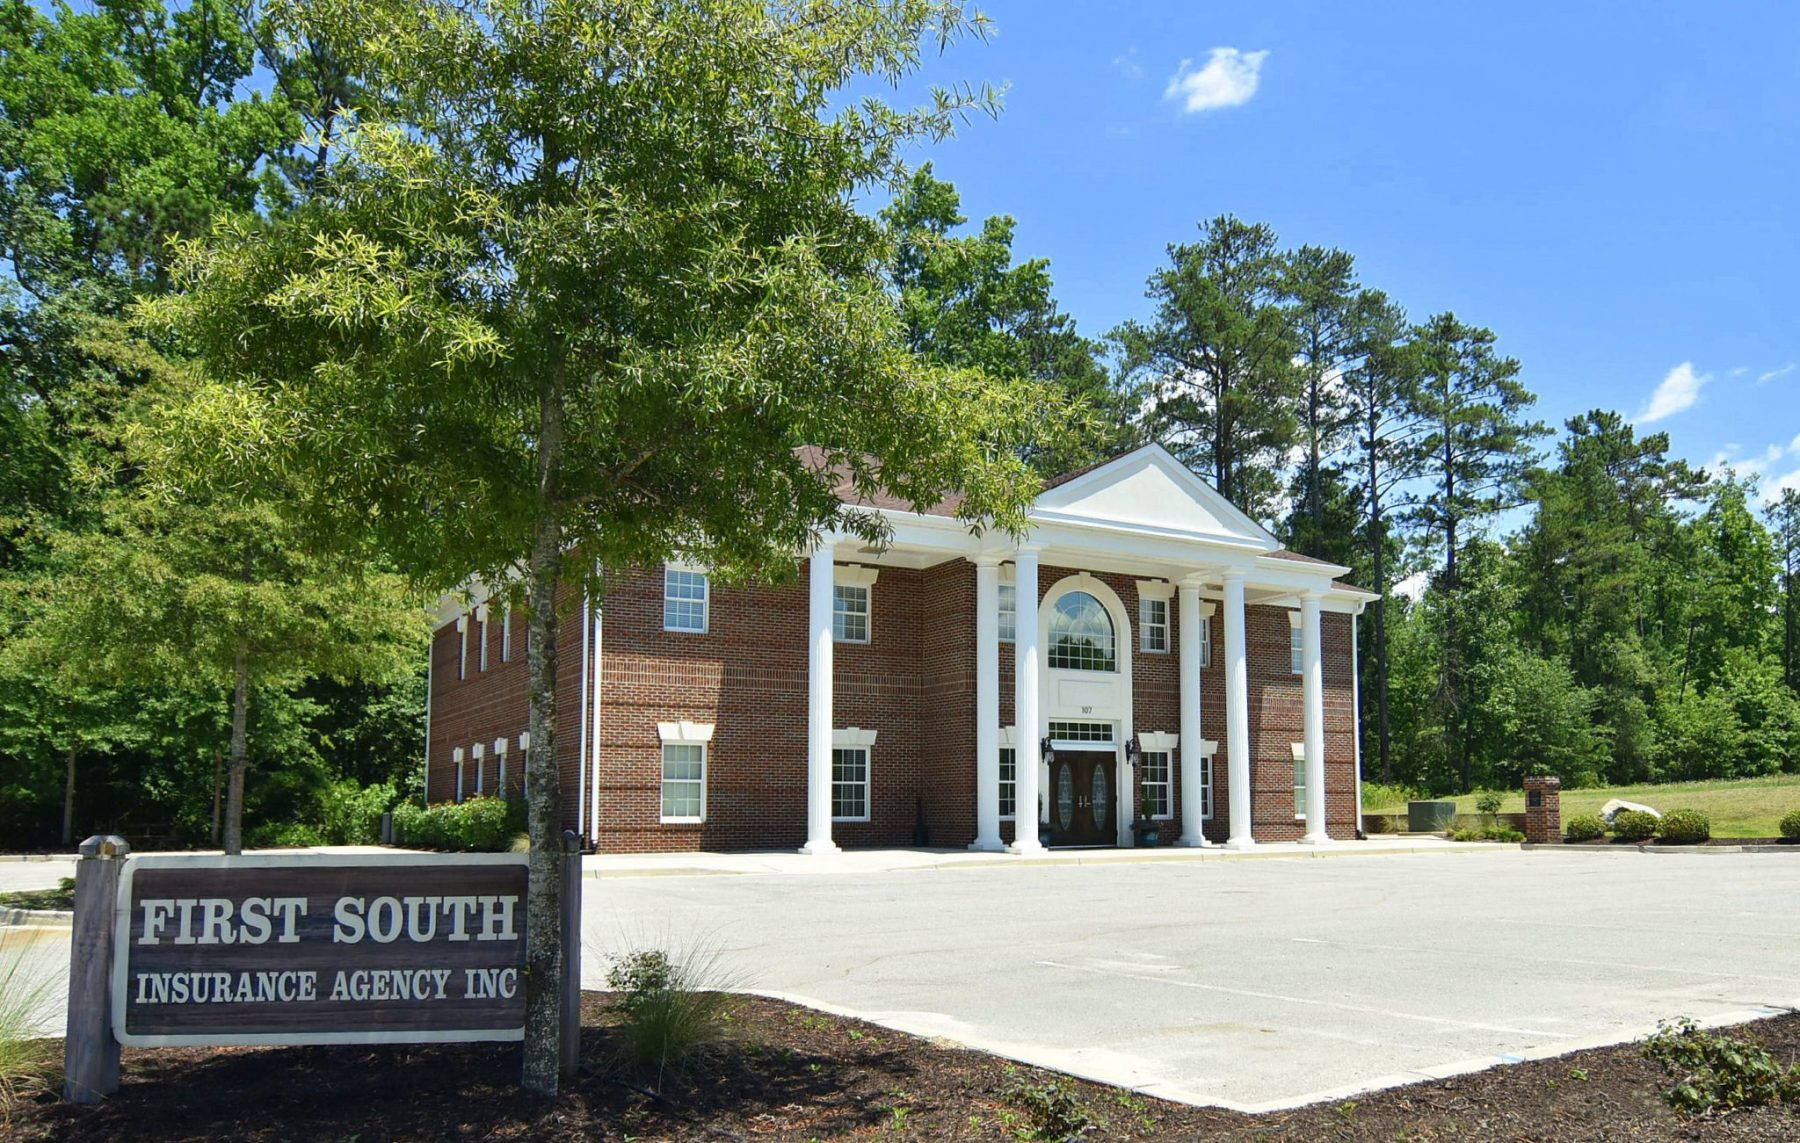 Main office located in Lexington, SC